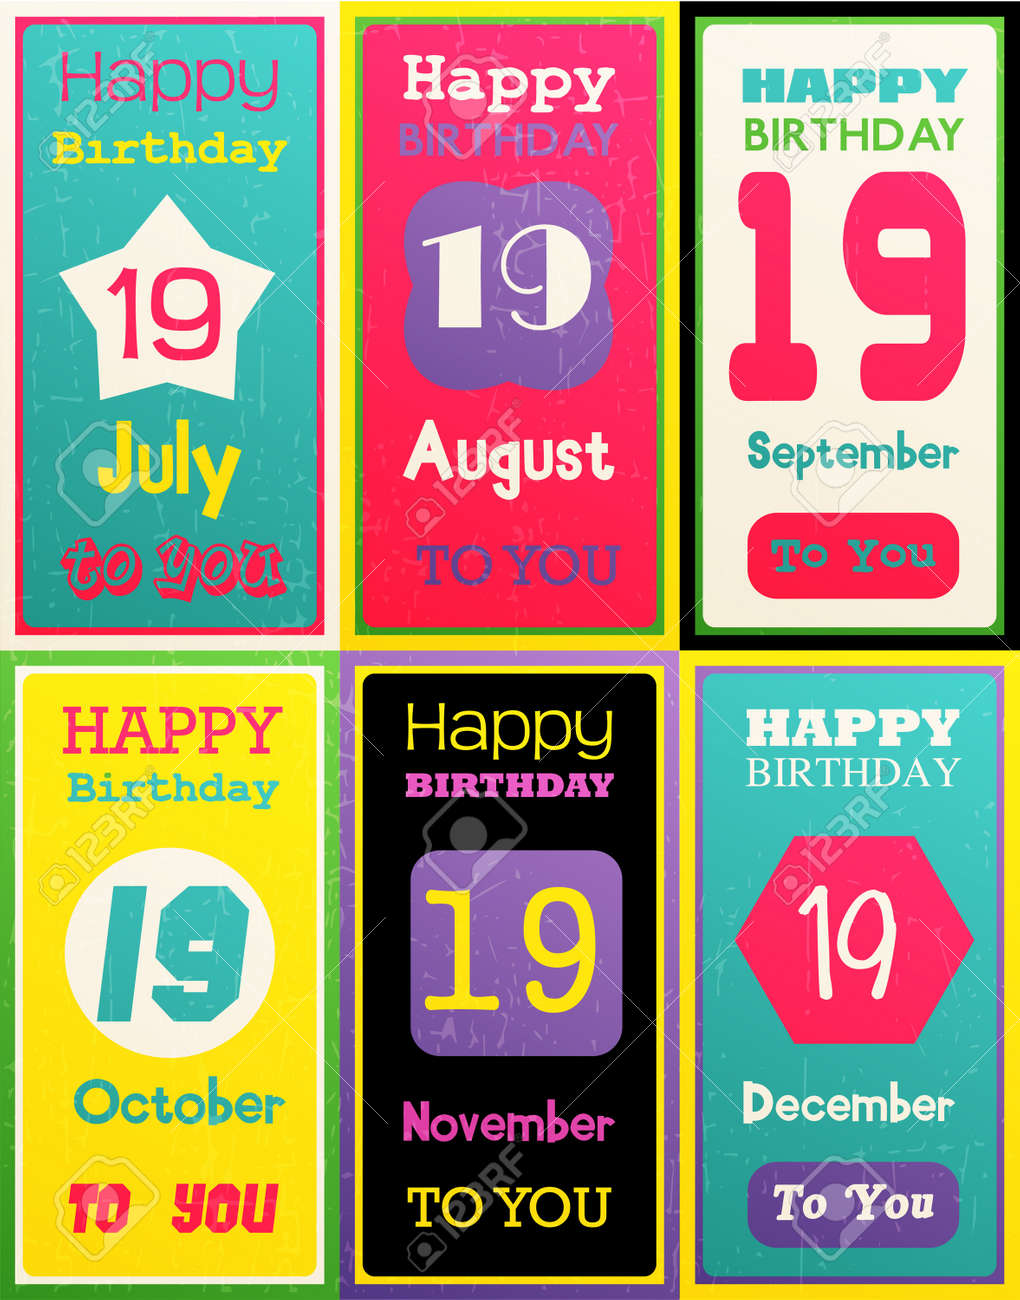 Greeting Happy Birthday CardMonth July August September October November December Vector Illustration Set Of Six Gift Bannersing Card